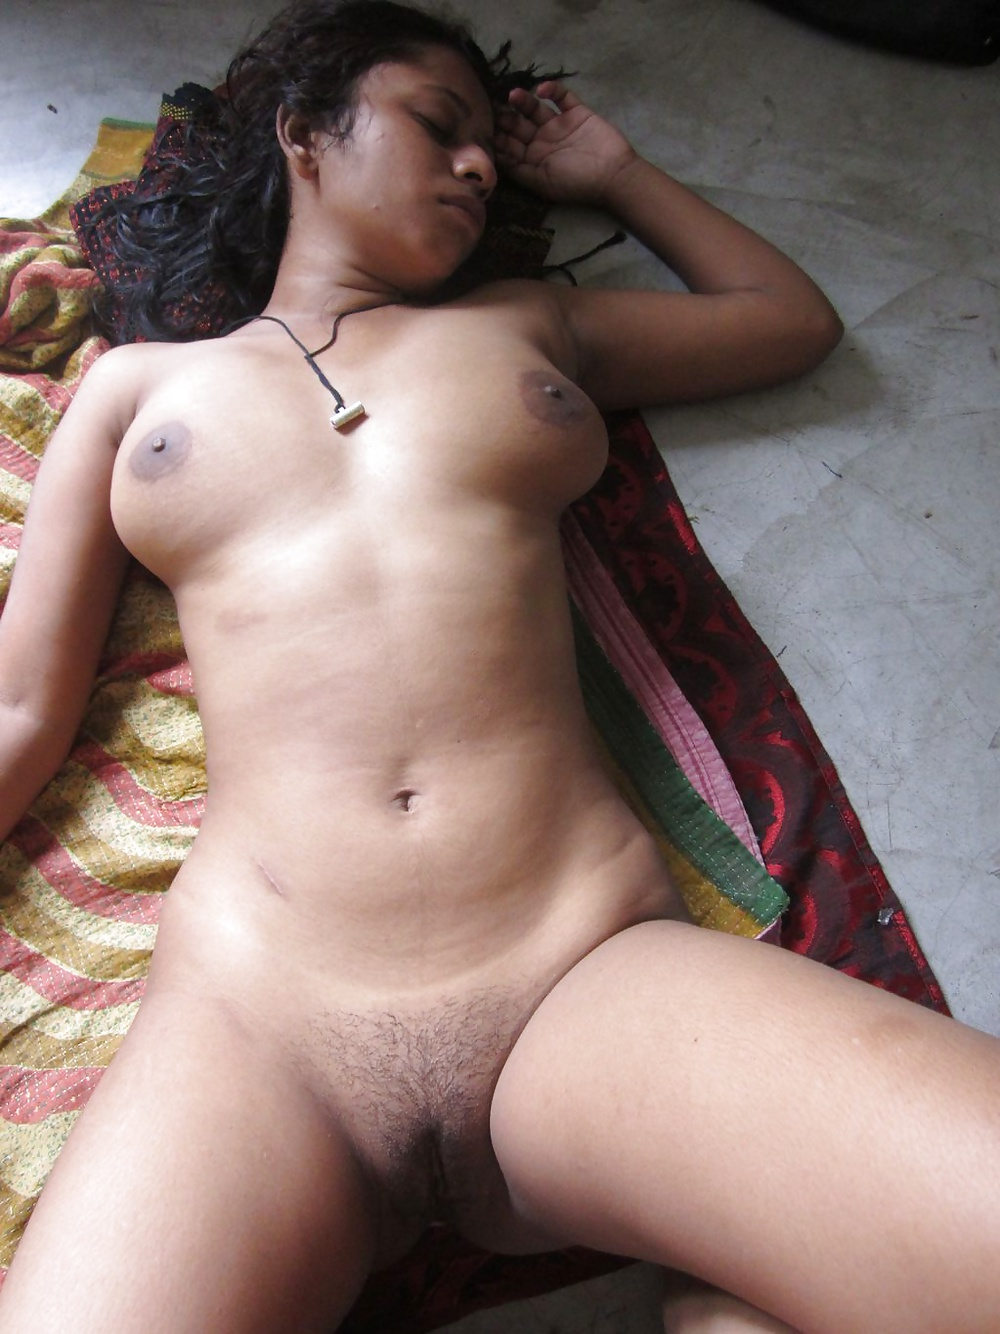 Teens porn sex photos of gujarat — photo 9